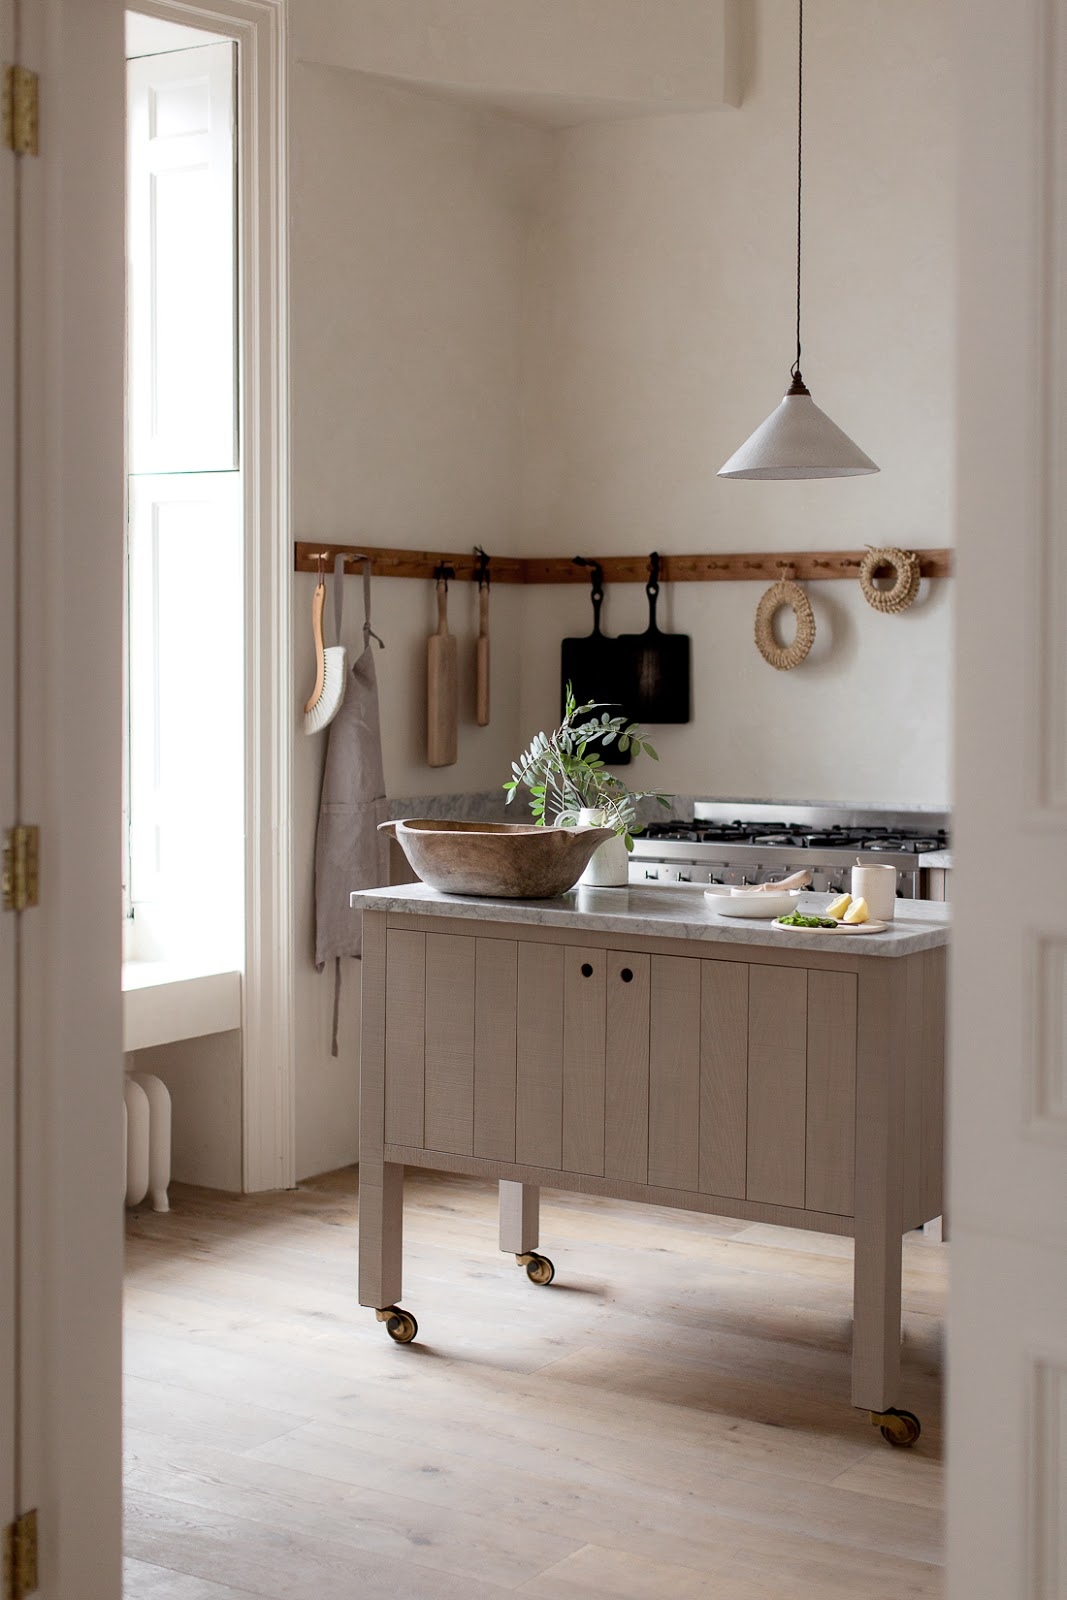 ilaria fatone - a comforting and minimal home - a kitchen detail